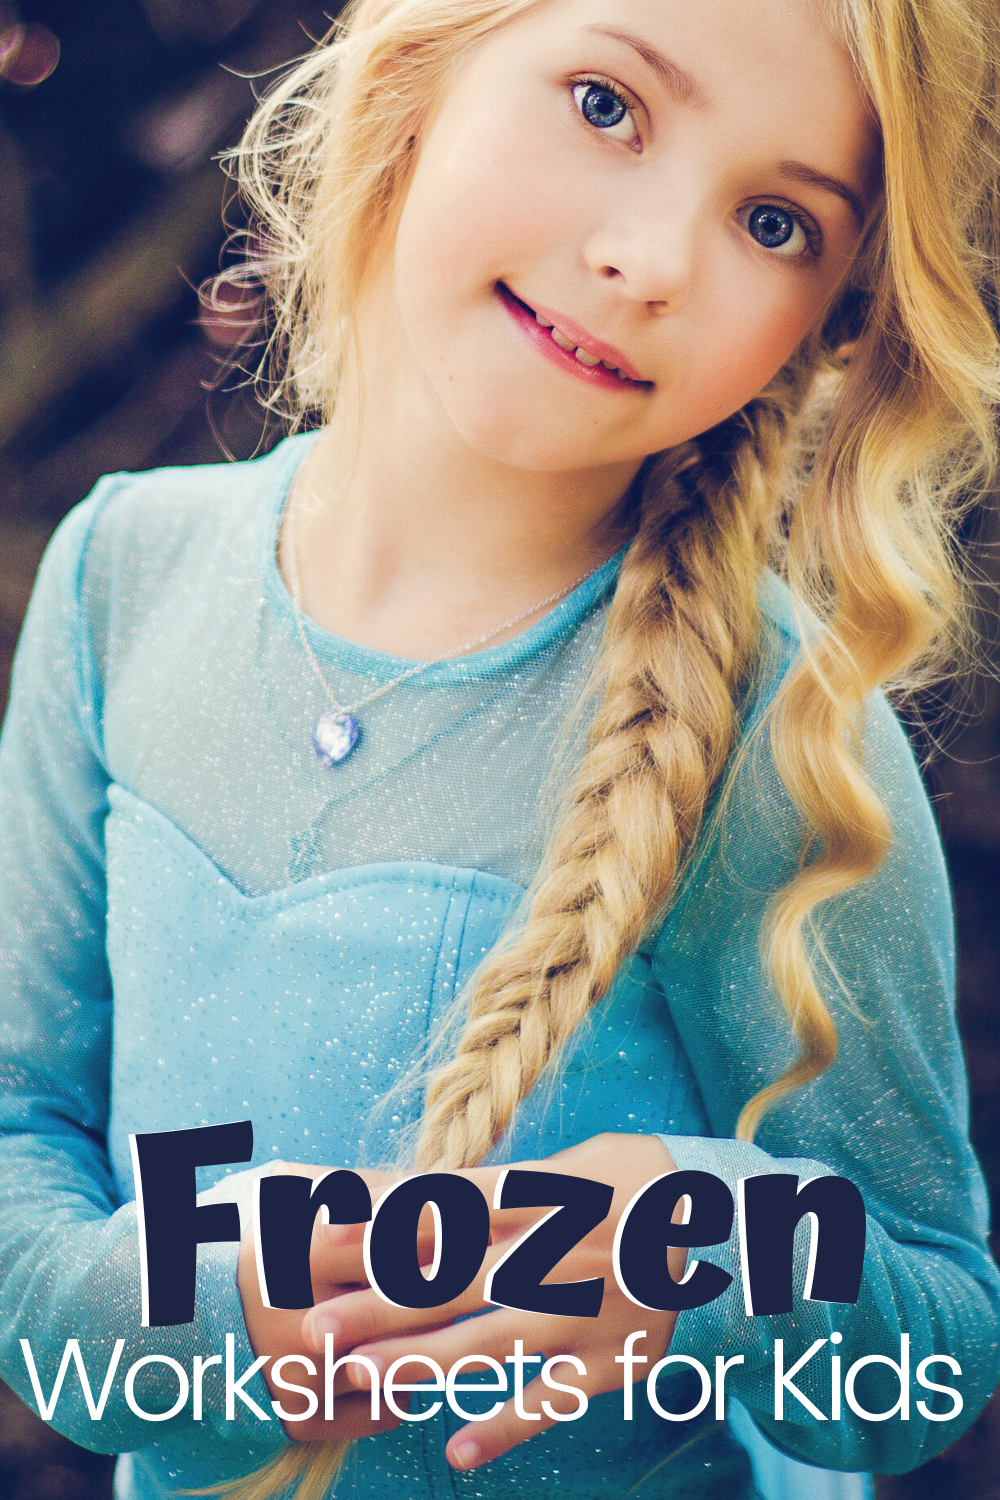 Even your oldest Frozen fans can get in on the fun with this wonderful collection of Frozen worksheets! Find games, educational activities, and more!